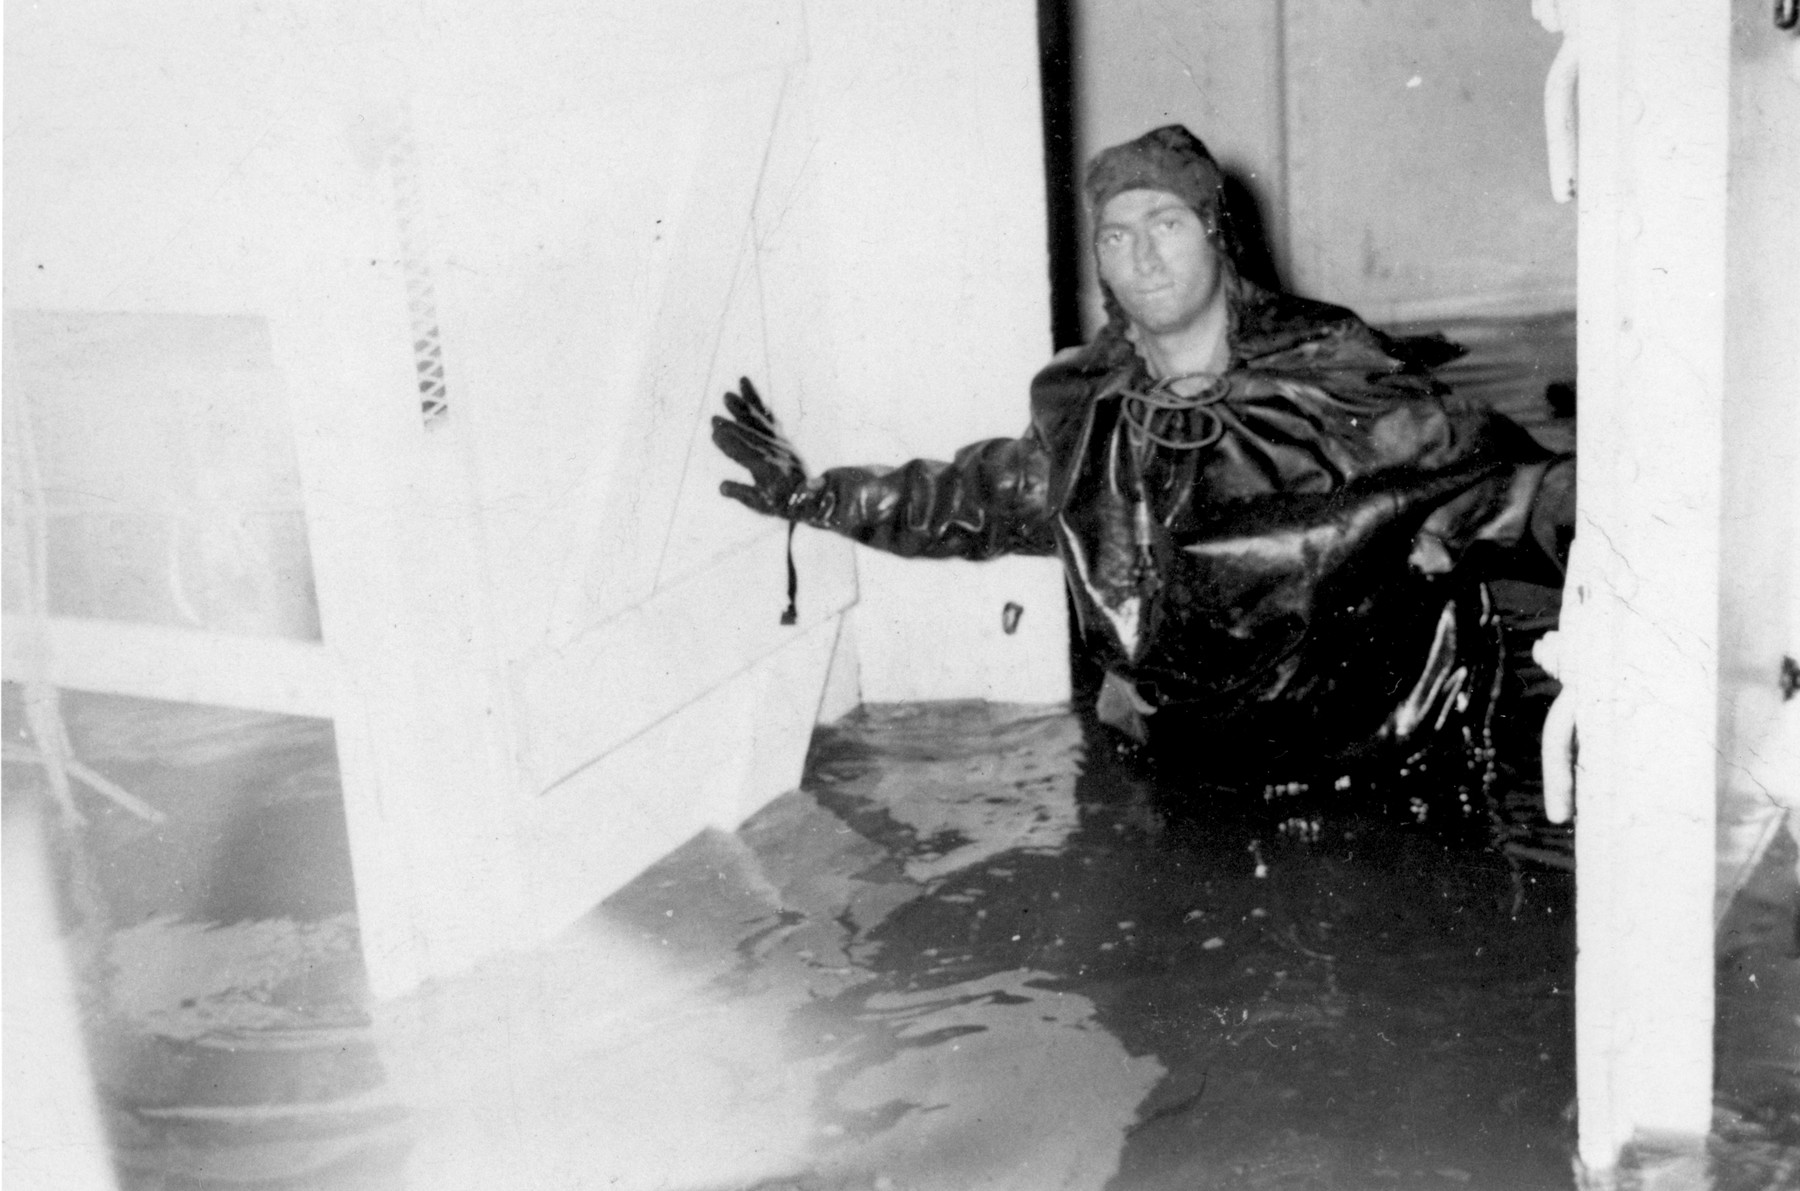 Murray Aronoff stands knee-deep in water in the engine room of the President Warfield after the gale that nearly sank the ship during its first attempt to cross the Atlantic Ocean.